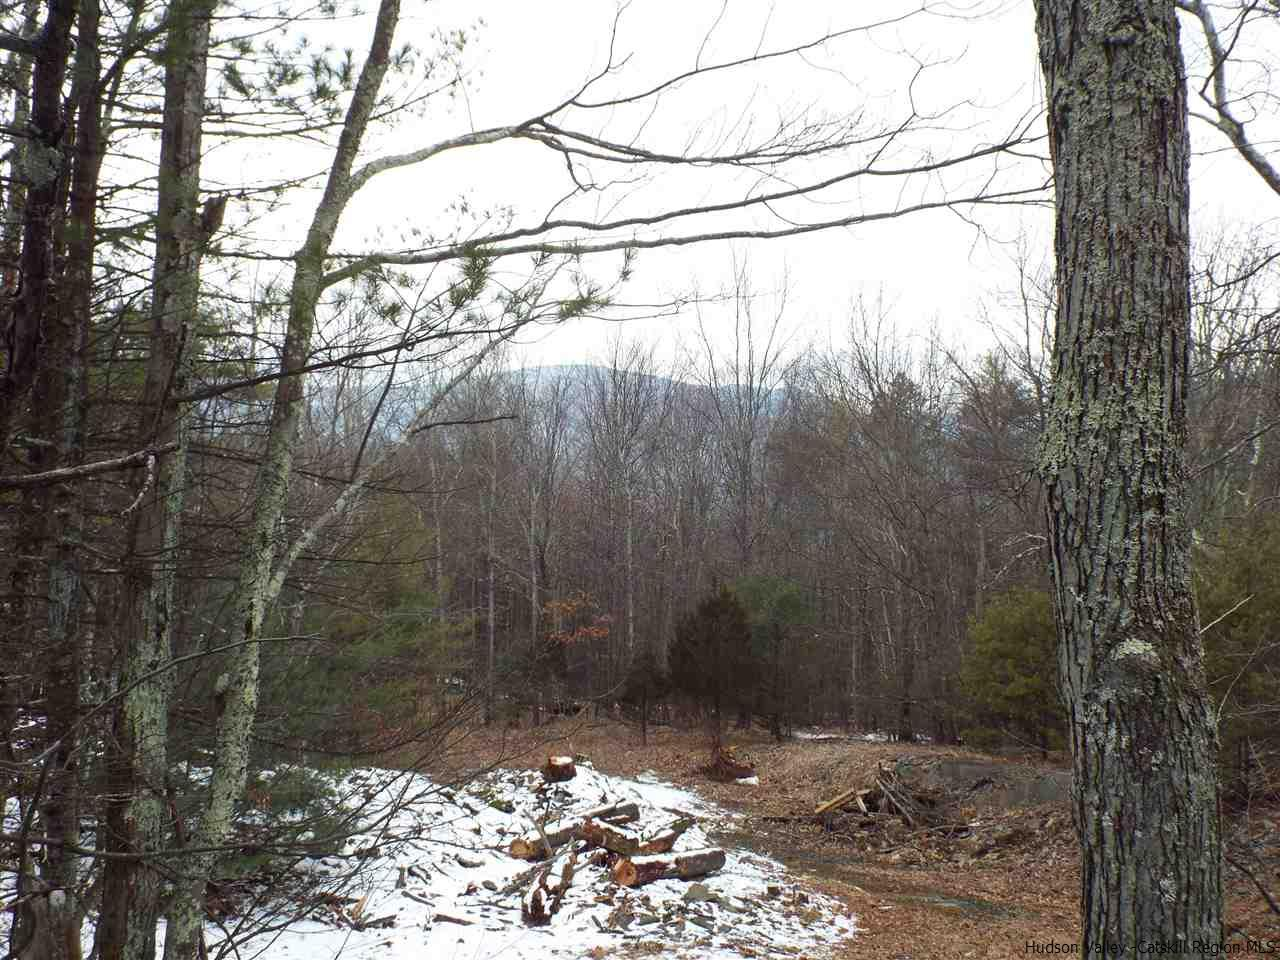 Single Family Home for Sale at LOT 2 BRINK ROAD LOT 2 BRINK ROAD Saugerties, New York 12477 United States